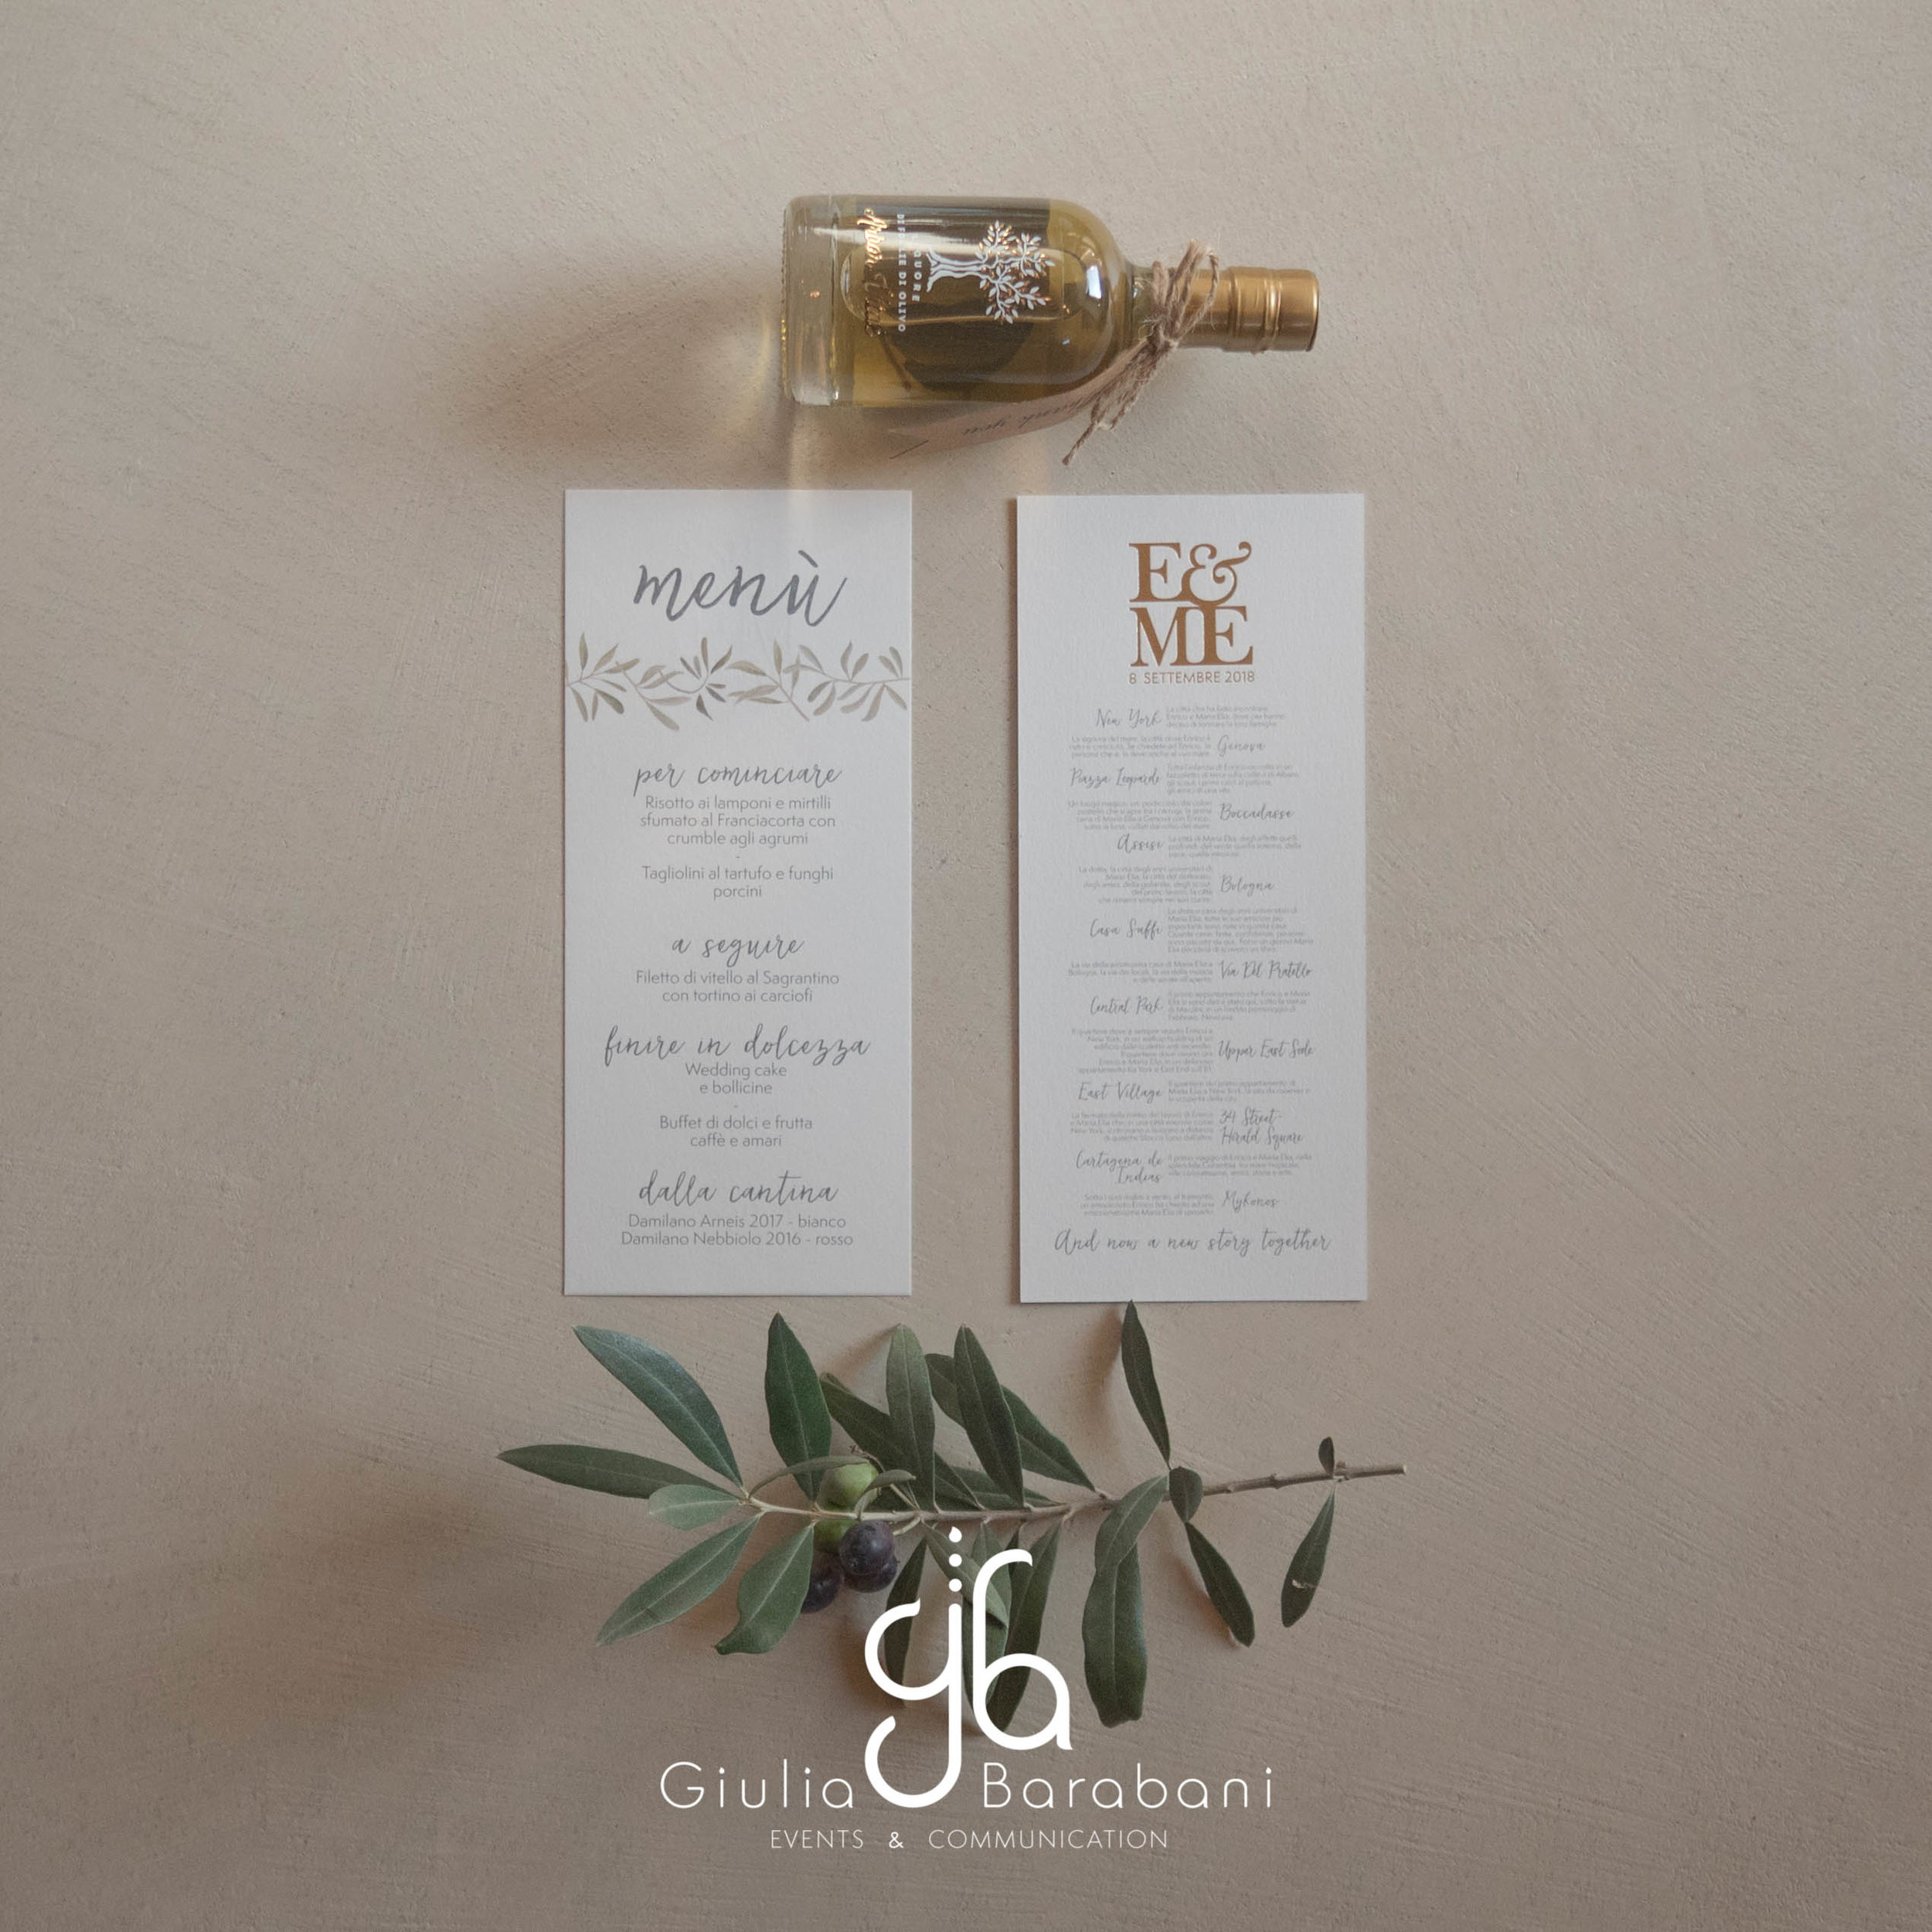 Menù e bomboniera Matrimonio - wedding stationery